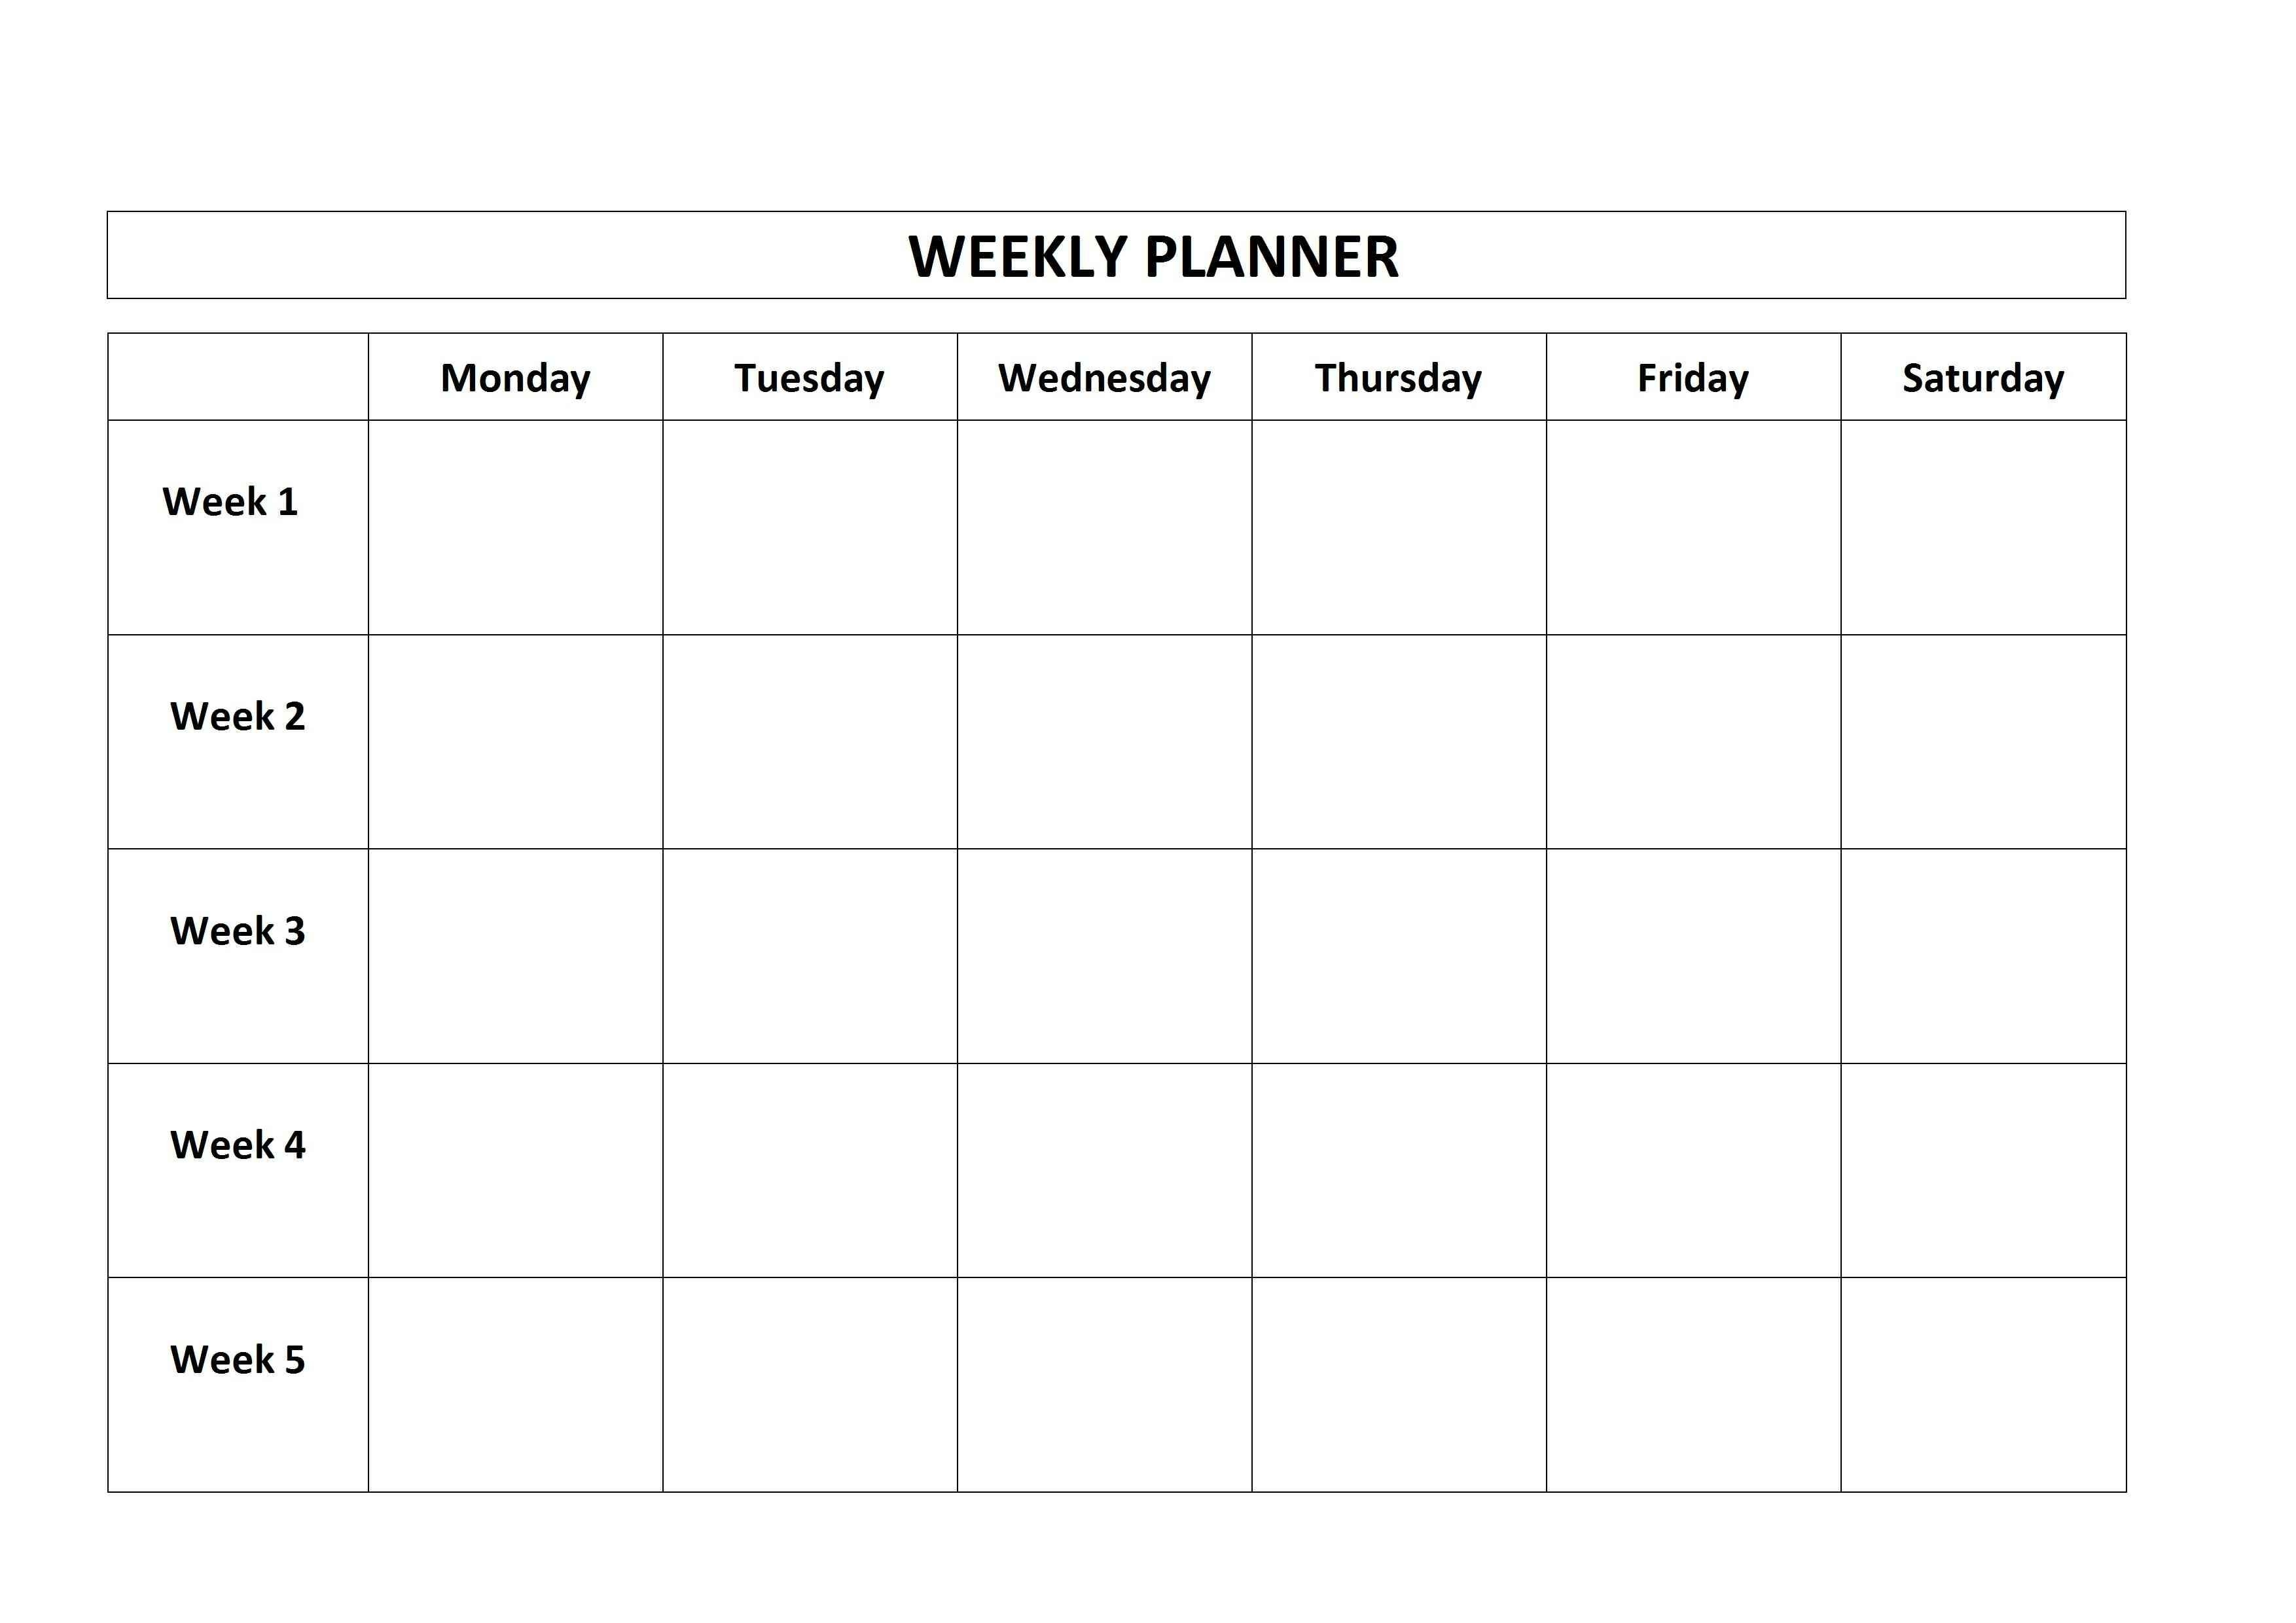 Free Printable Weekly Planner Monday Friday School Calendar-Monday Through Friday Template